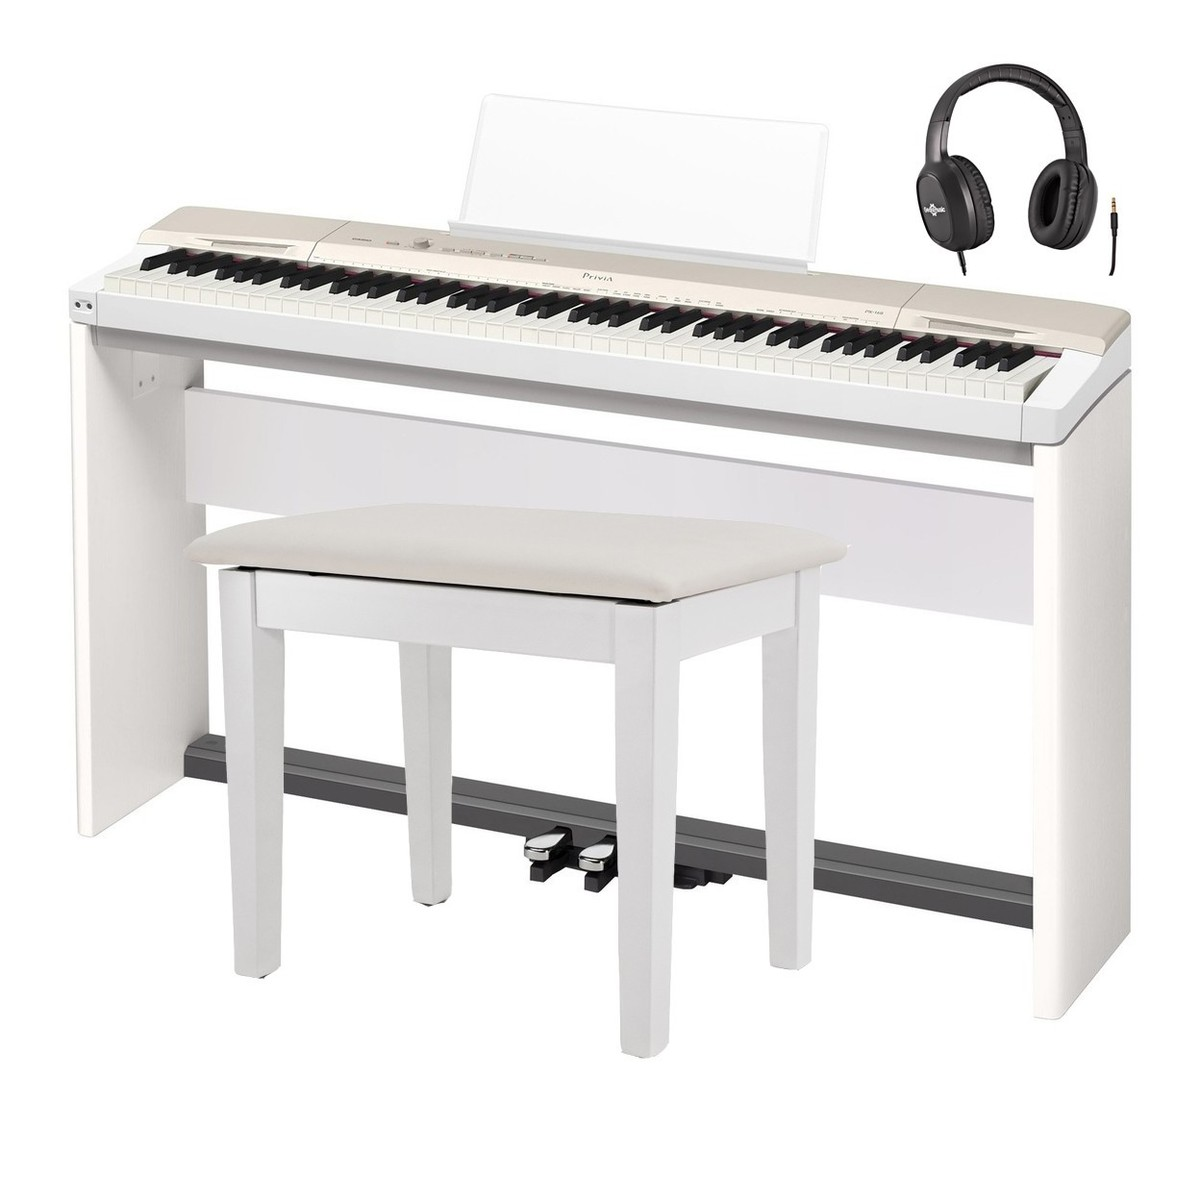 75ab17b0caf Casio Privia PX-160 Piano Pack. Loading zoom